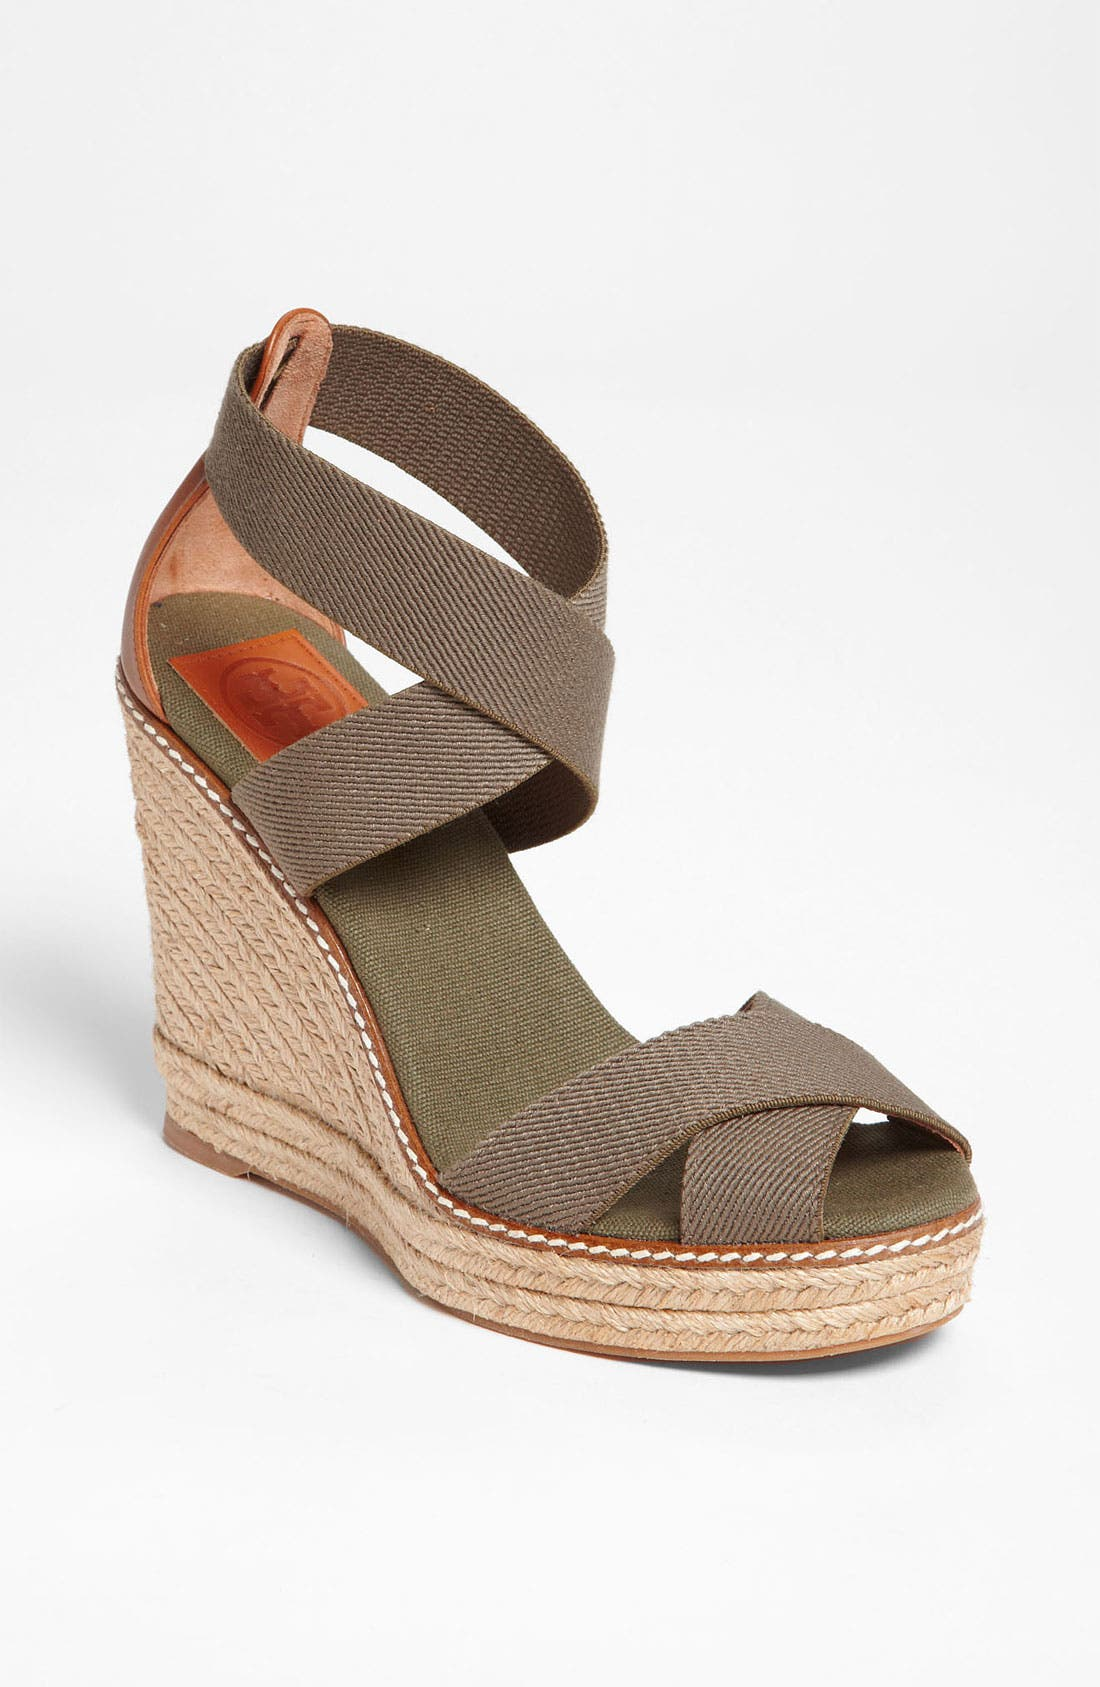 Main Image - Tory Burch 'Adonis' Wedge Espadrille